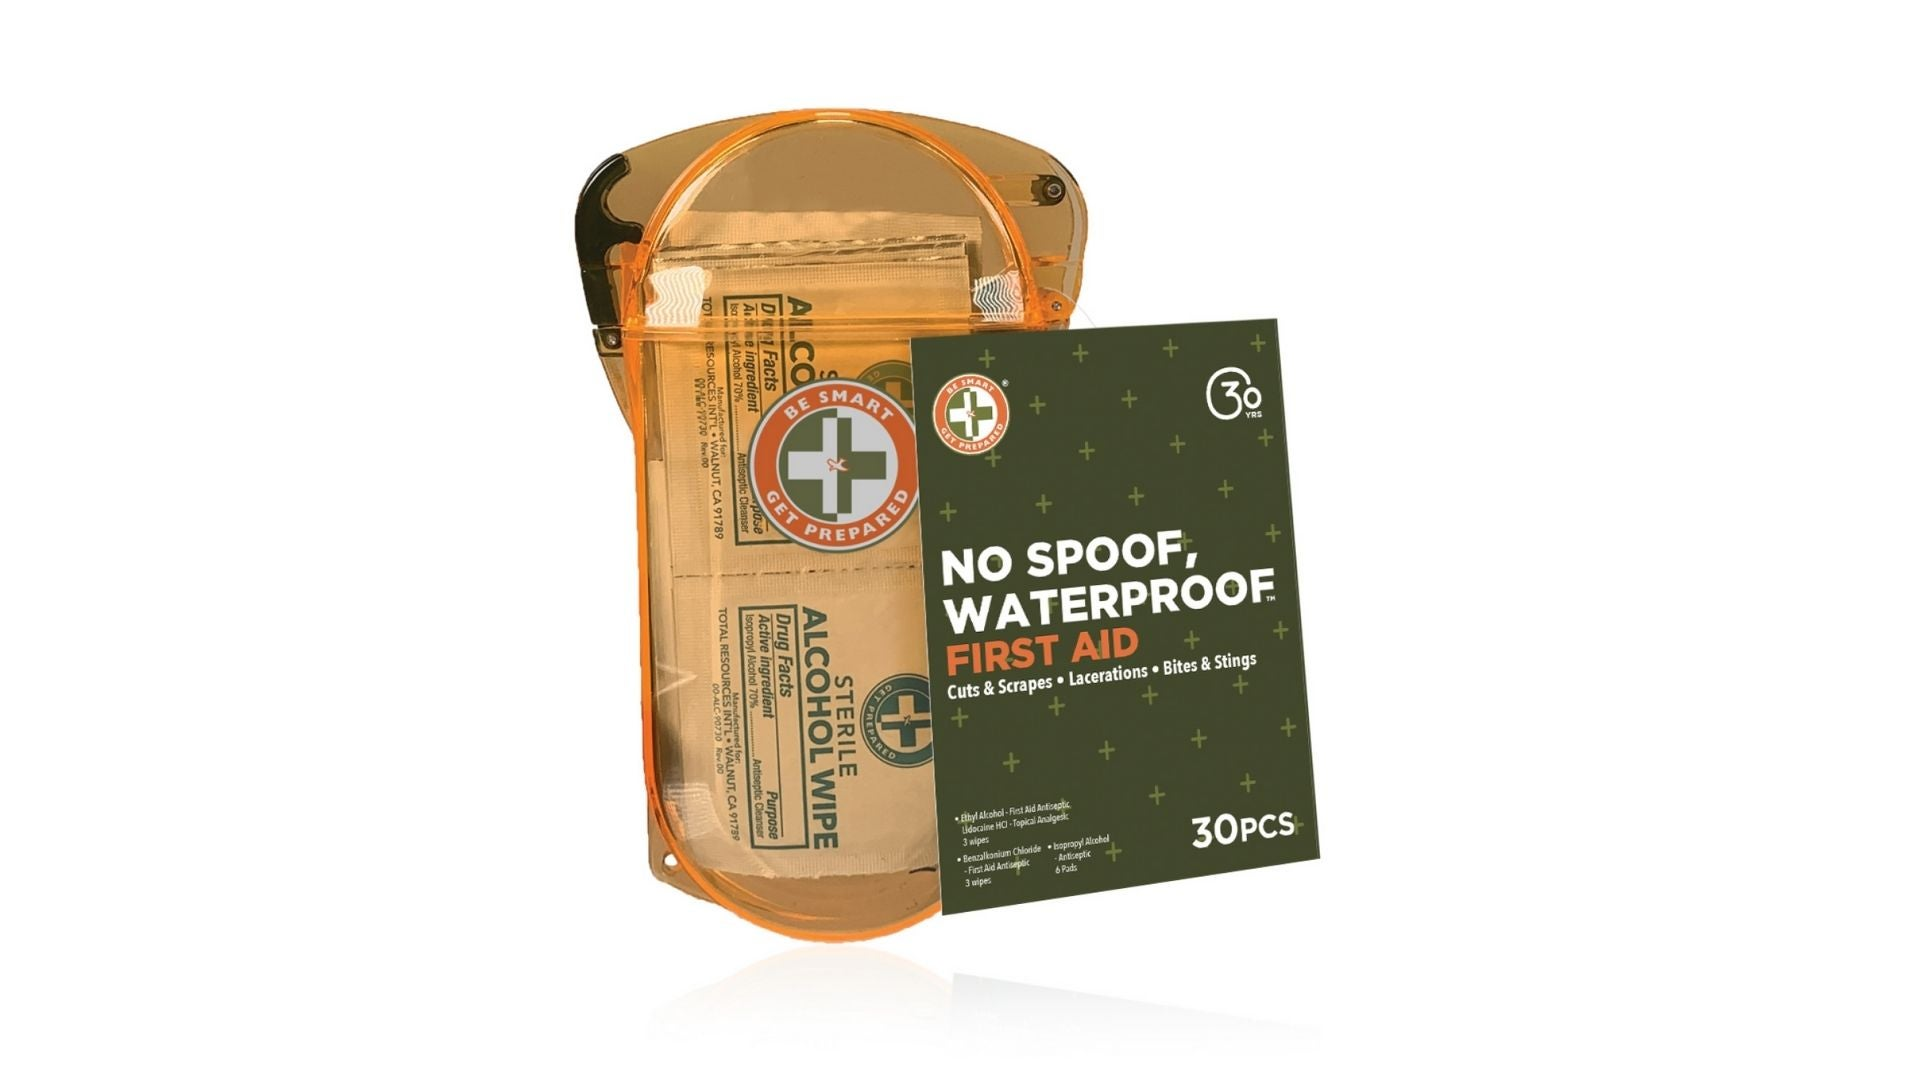 No Spoof, Waterproof First Aid Kit by Be Smart Get Prepared, 30 Piece